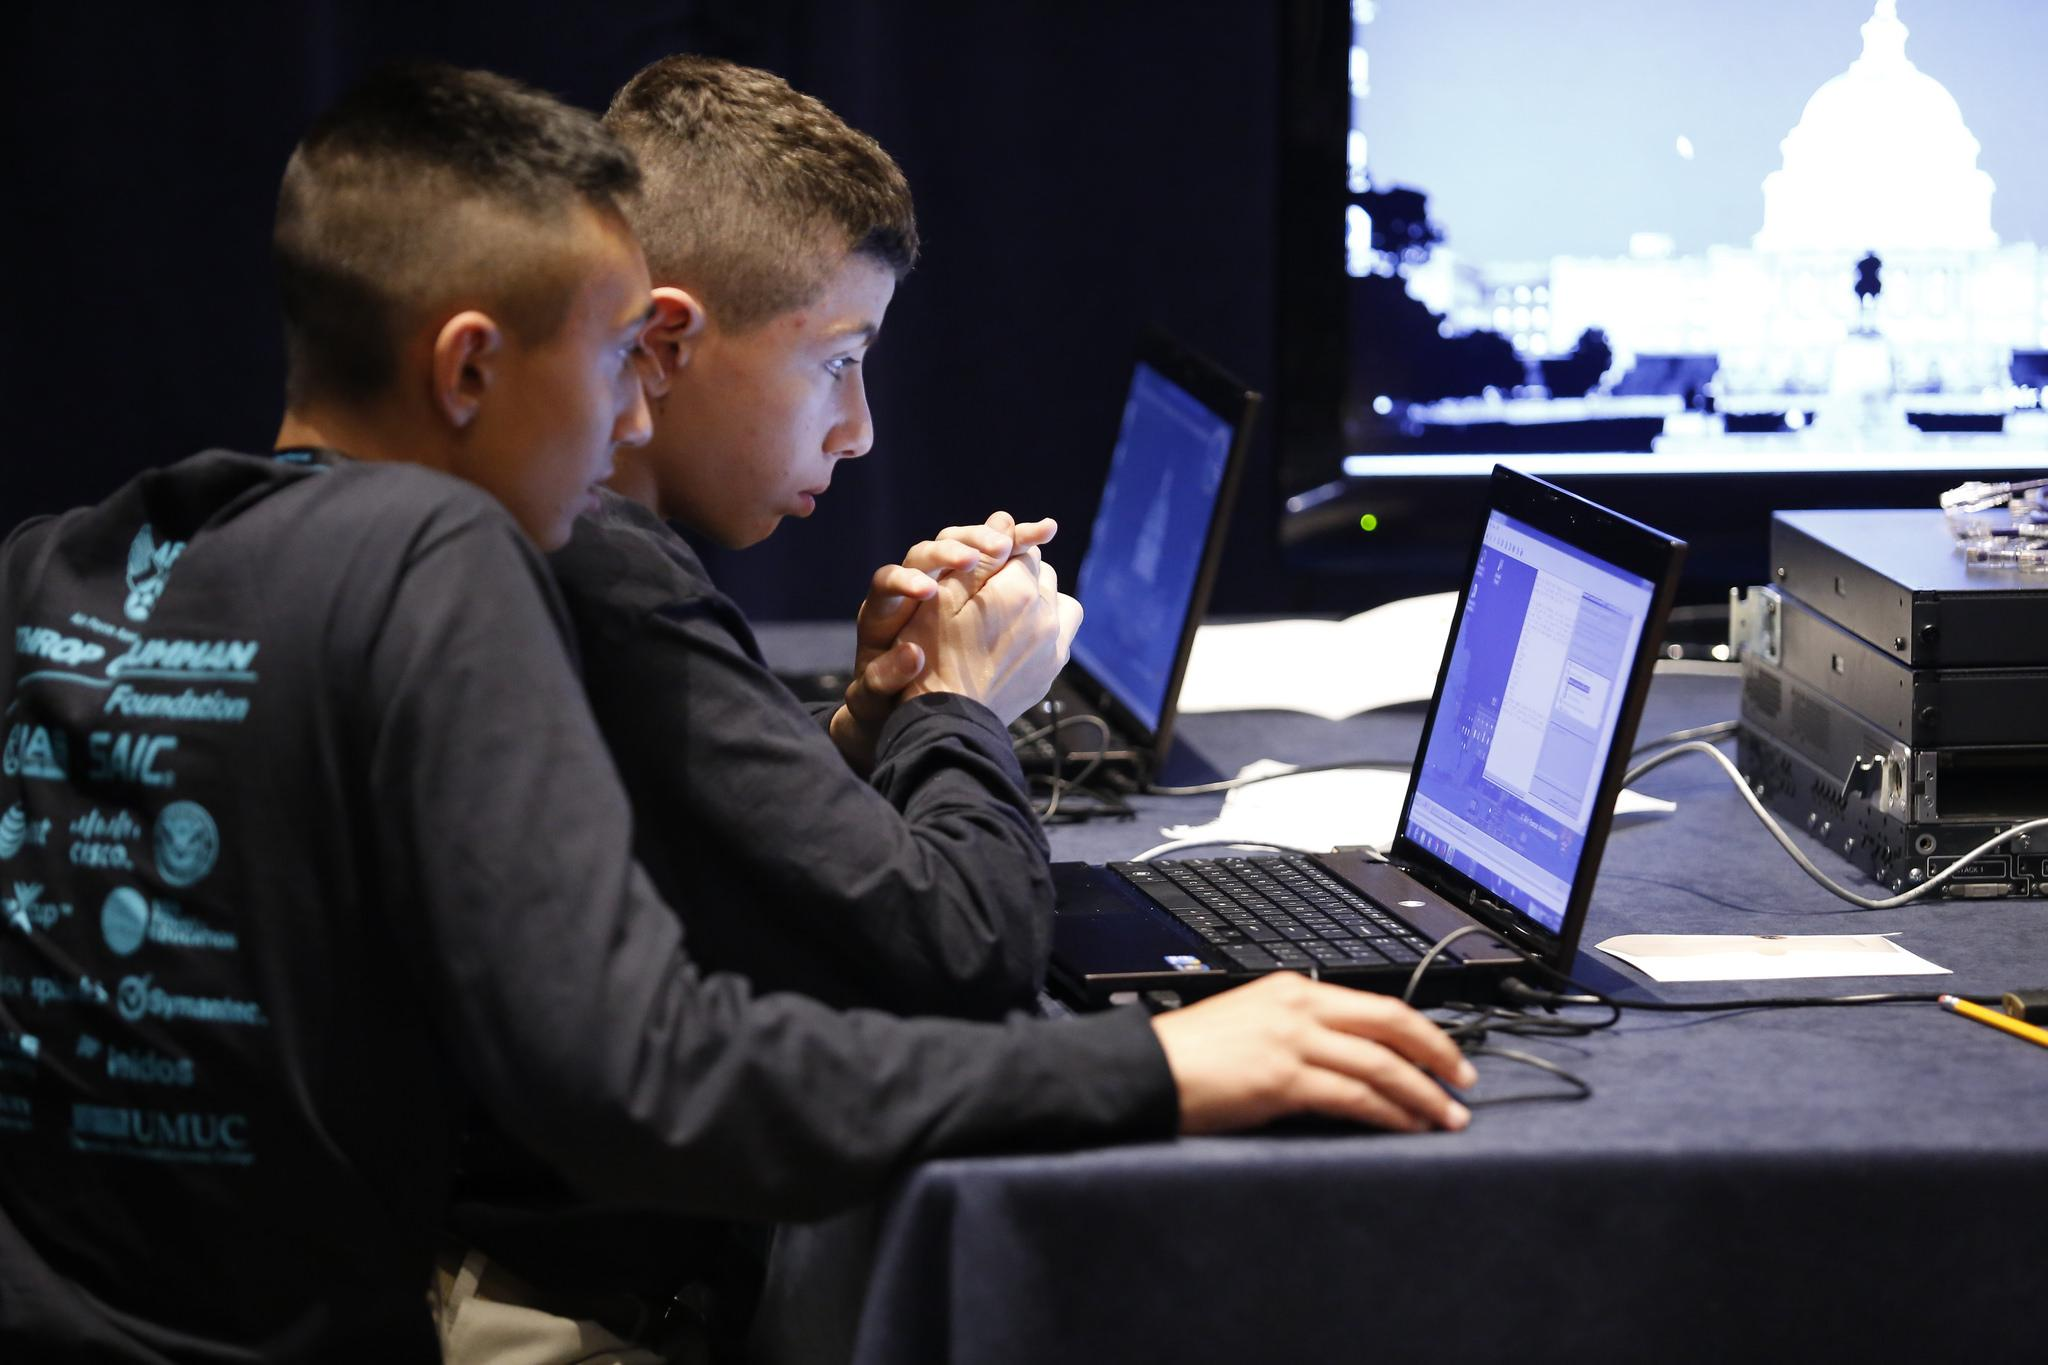 Students participate in the U.S. CyberPatriots competition, sponsored by the U.S. Air Force and Air Force Association. (U.S. Air Force)